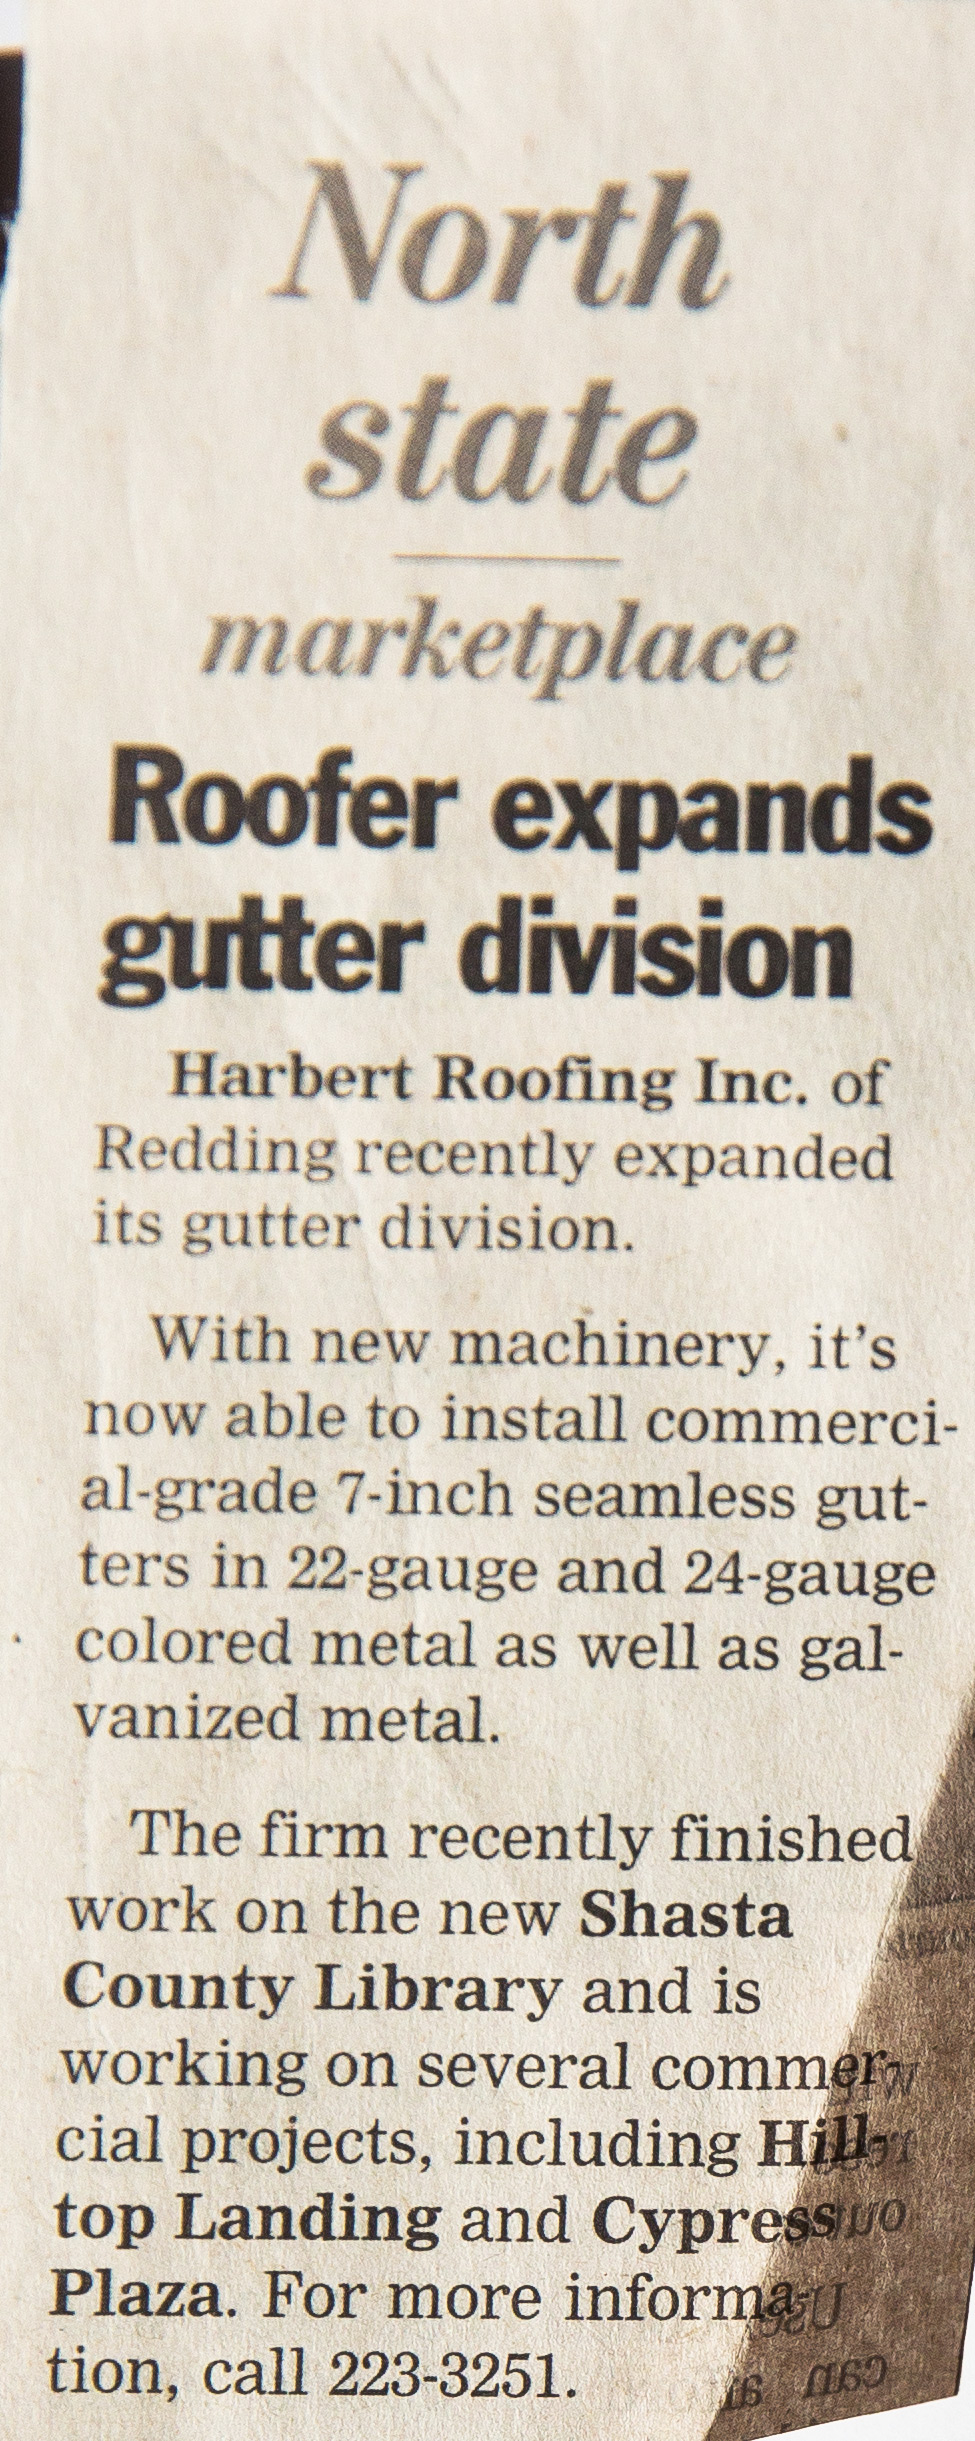 Harbert Roofing Inc. of Redding recently expanded its gutter division.  - With new machinery, it's now able to install commercial grade 7-inch seamless gutters in 22-gauge and 24-gauge colored metal as well as galvanized metal. The firm recently finished work on the new Shasta County Library and is working on several commercial projects, including Hilltop Landing and Cypress Plaza. For for information, call 223-3251Published January 8, 2007